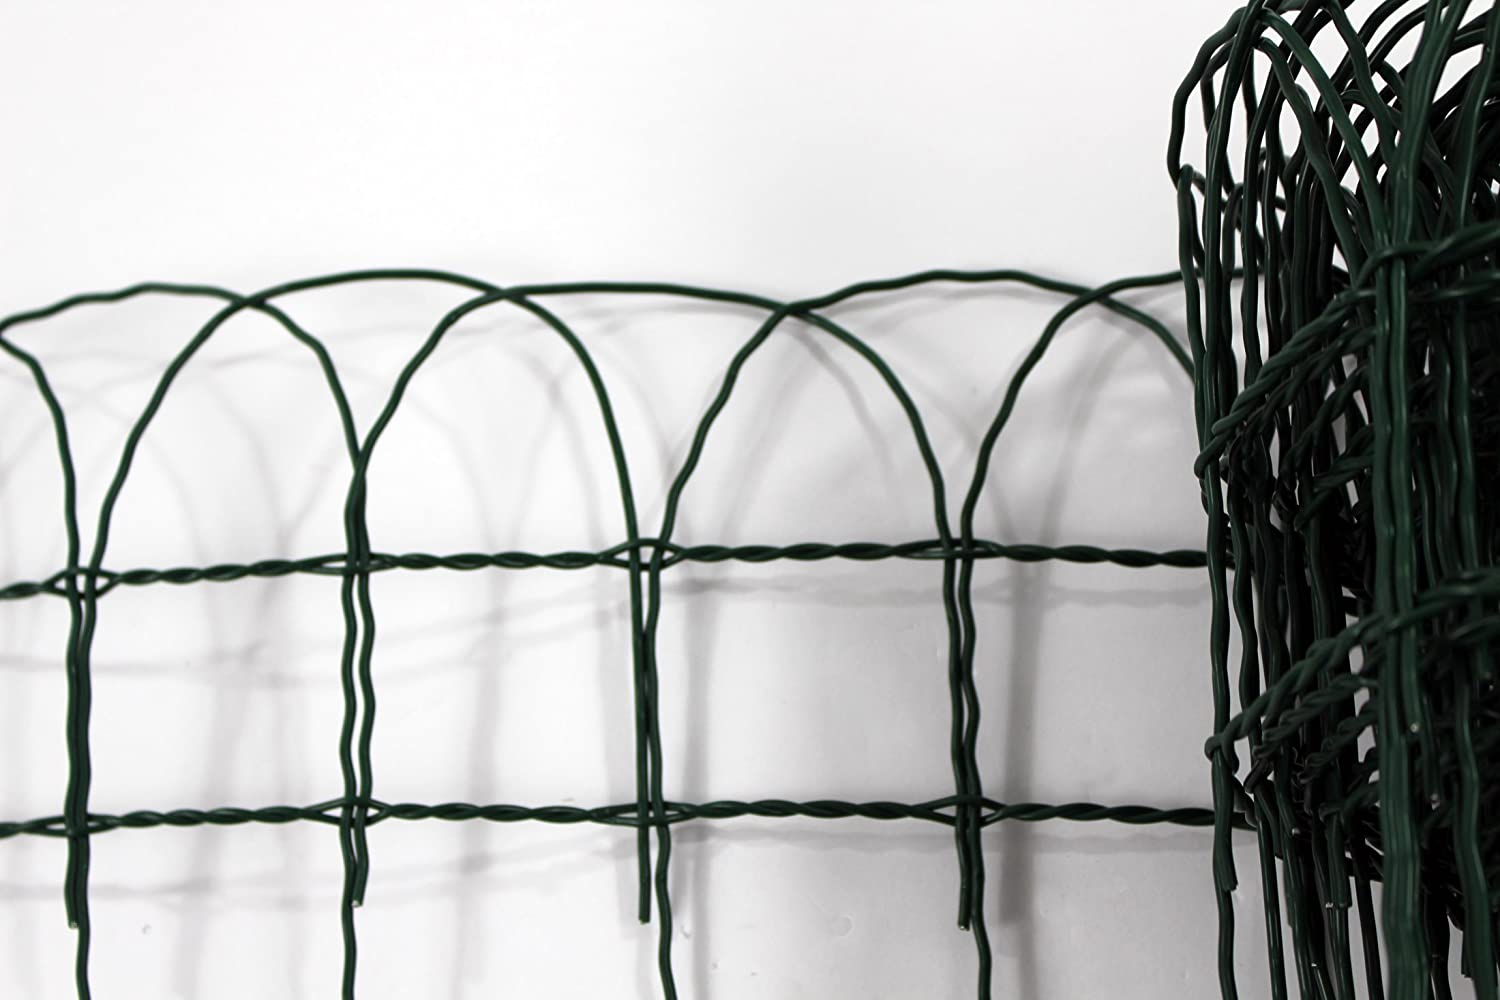 Garden Border Lawn Edging 10m x 400mm or 650mm PVC Coated Green Wire ...